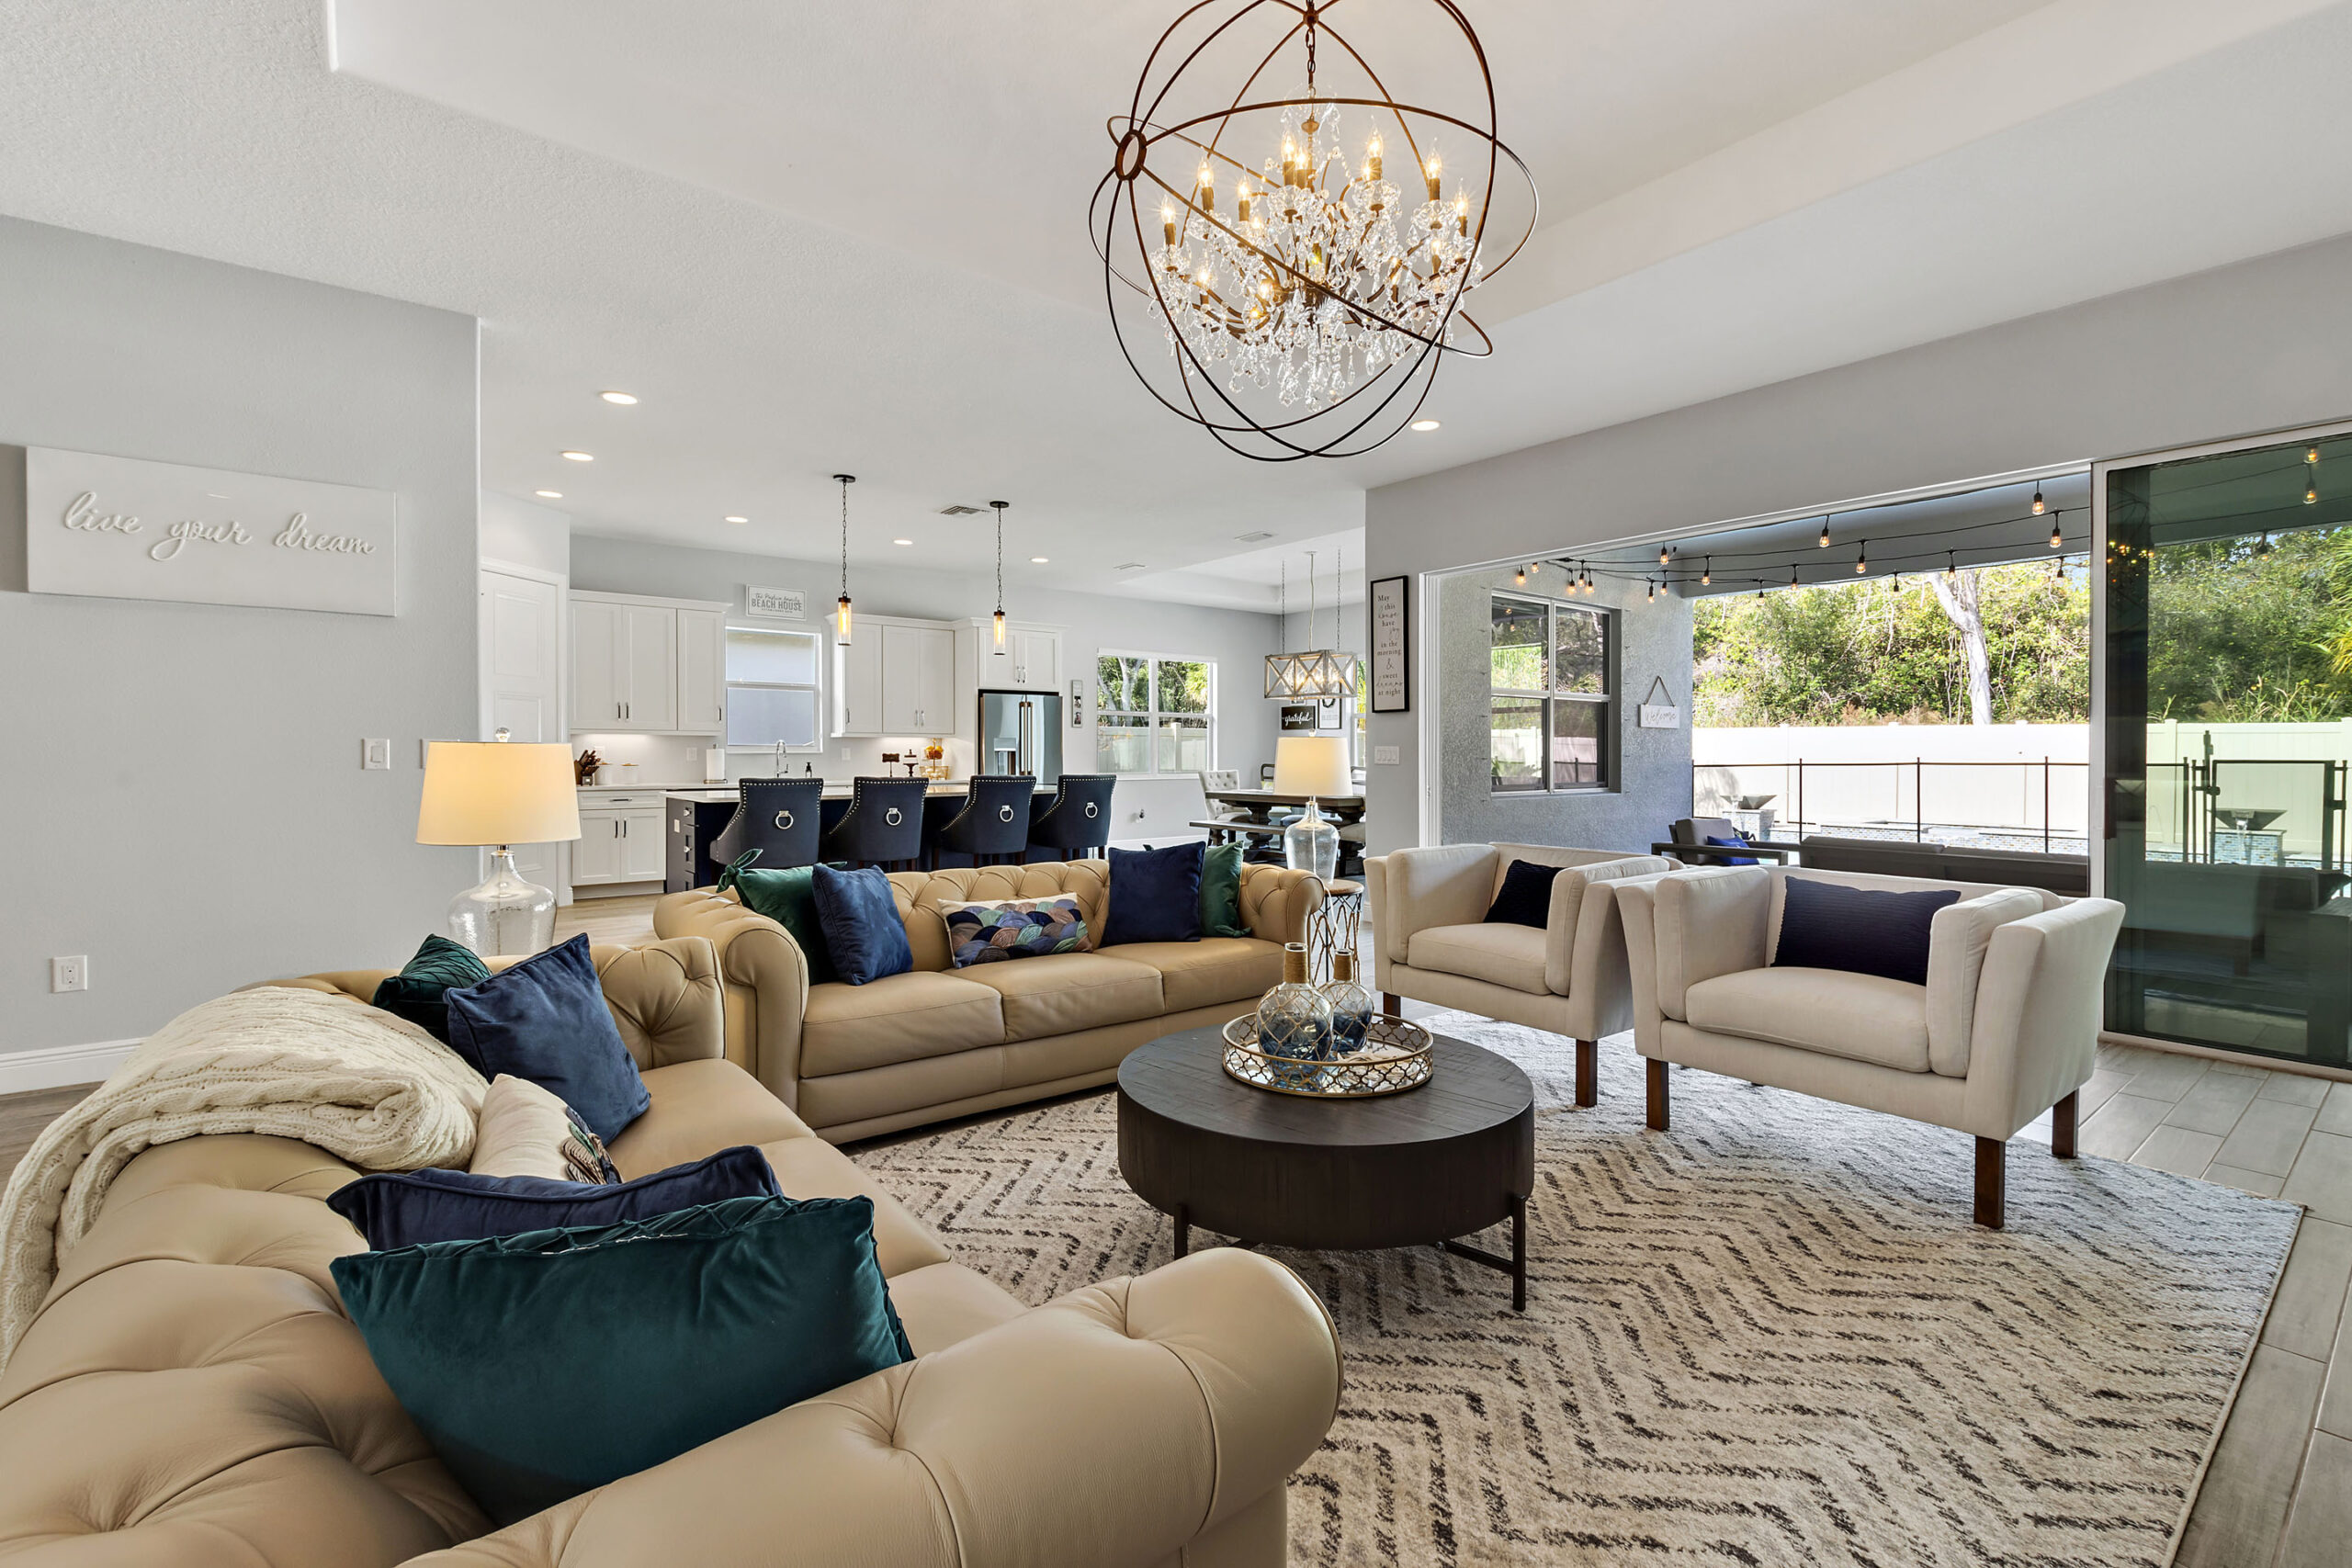 image of living room, kitchen & dining of interior decorated luxury home